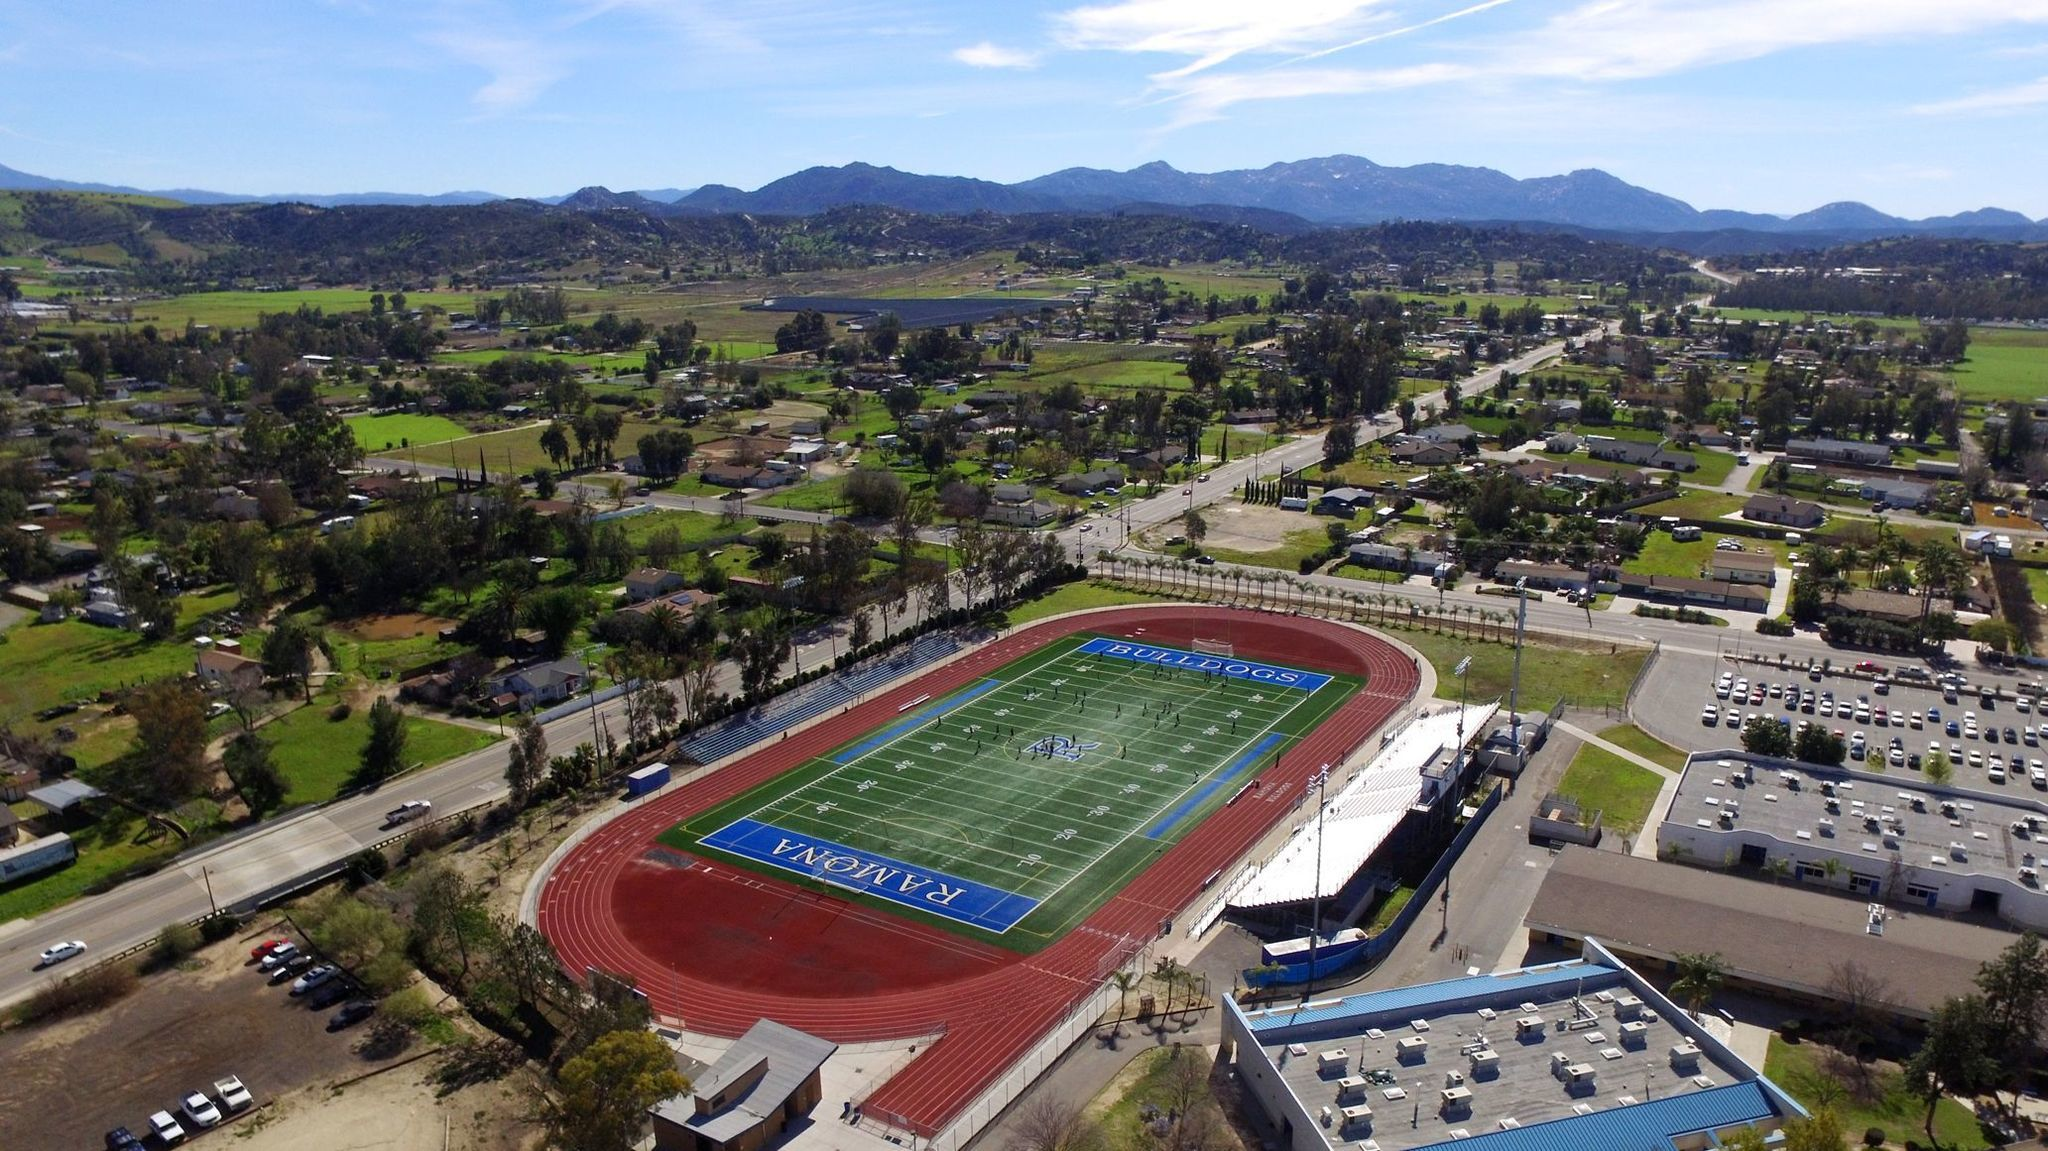 Bulldog ONE takes an overhead shot of the Ramona High School campus and surrounding area.